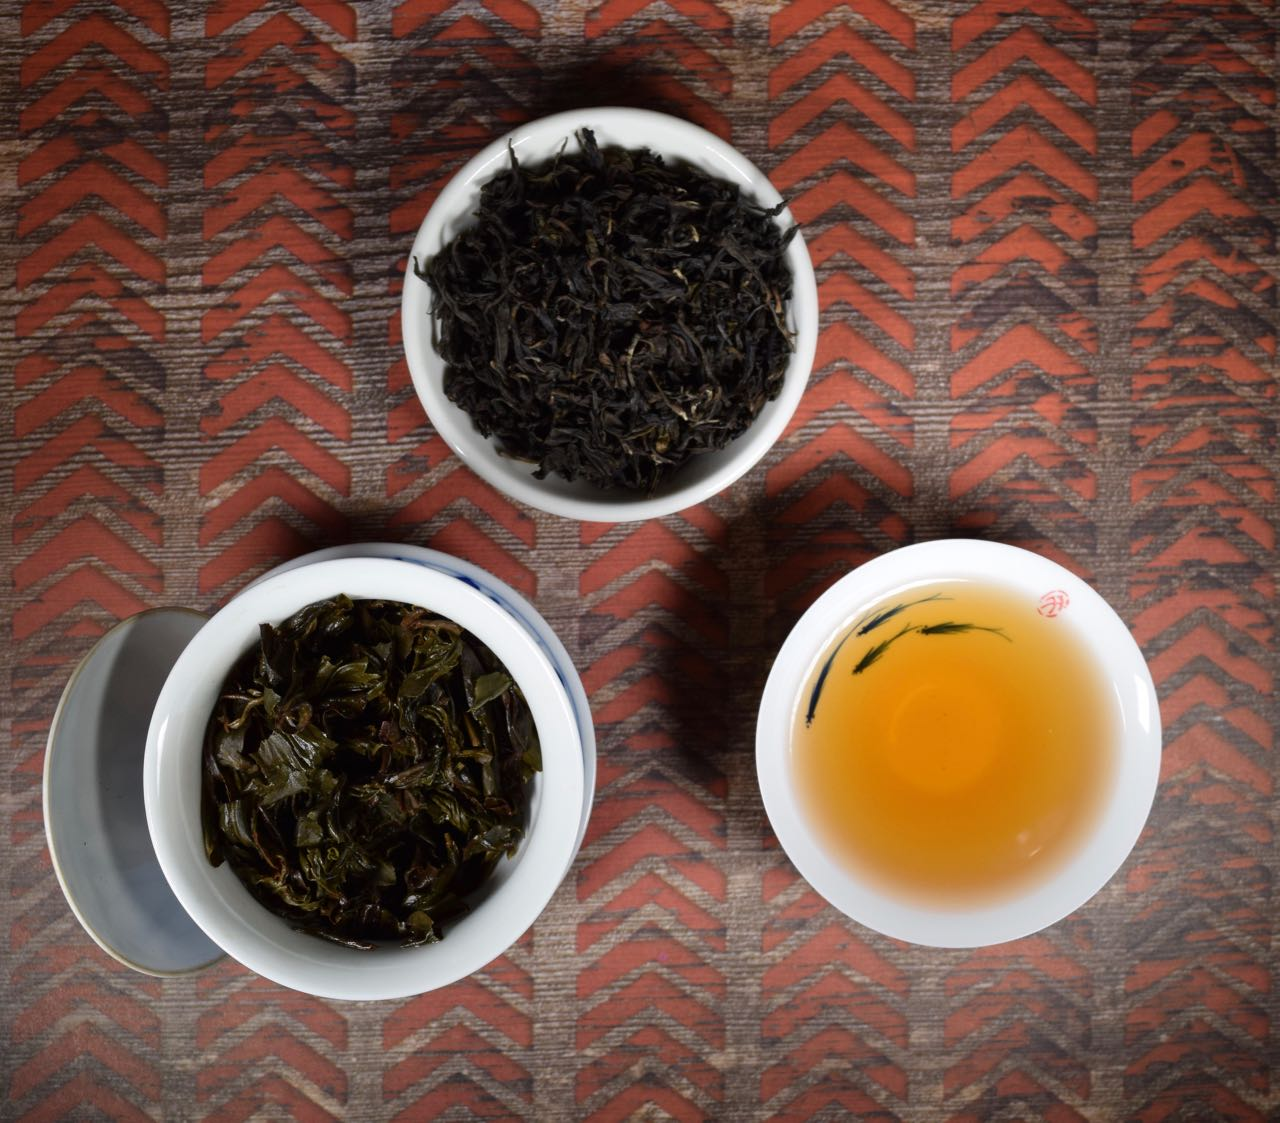 Big Red Robe, Gongfu, Oolong Tea, Whole Dry Leaf, Wet Leaf, and Infusion, Miami.Coffee